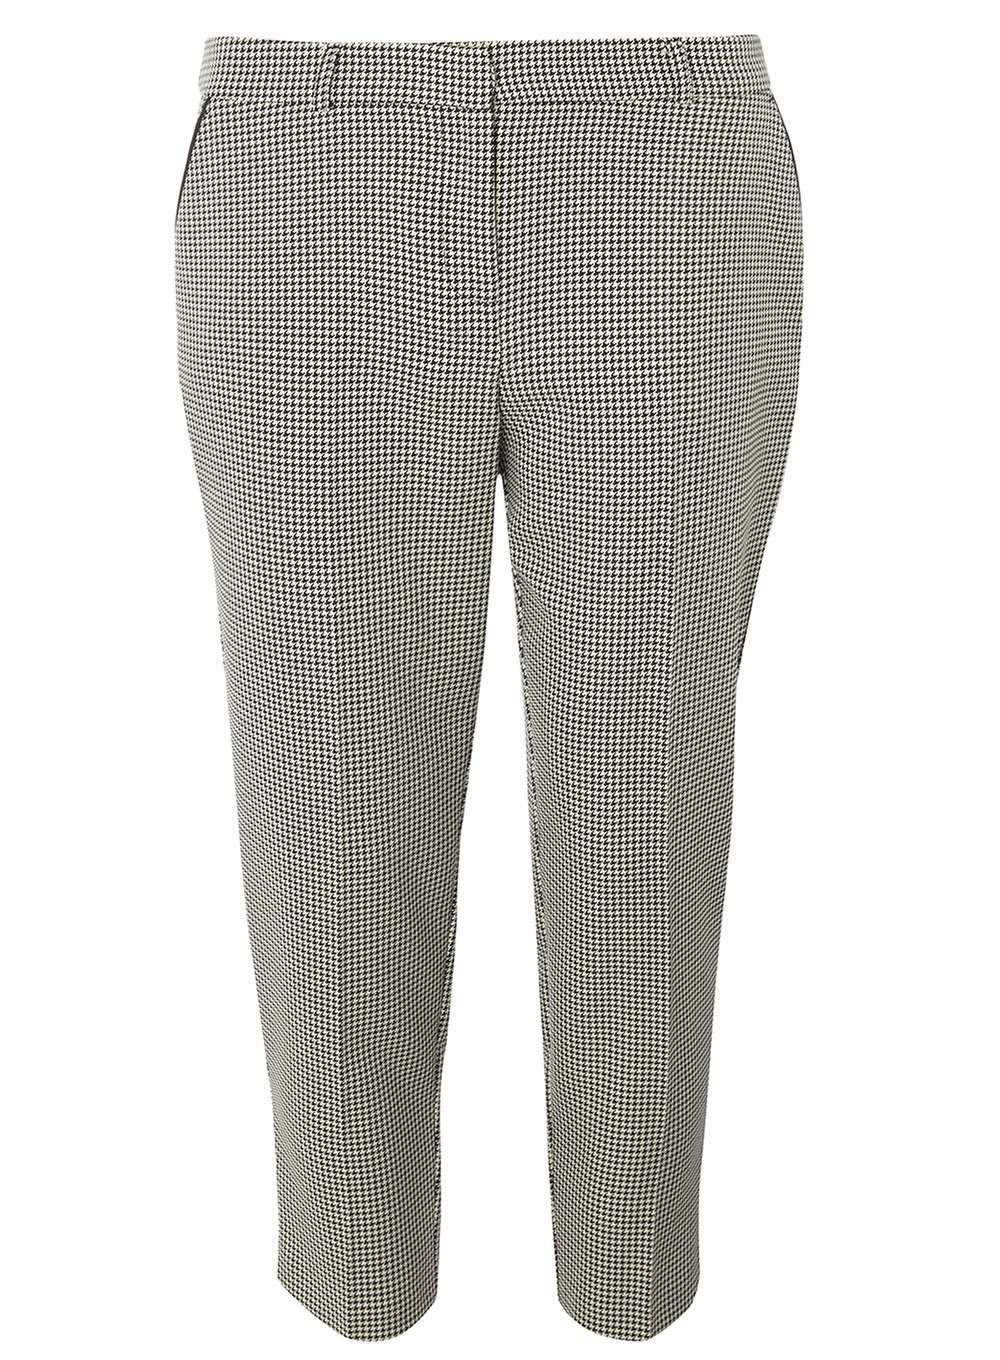 Womens Petite Dogtooth Straight Leg Trousers Grey - pattern: plain; hip detail: draws attention to hips; waist: mid/regular rise; predominant colour: mid grey; occasions: casual, creative work; length: ankle length; fibres: polyester/polyamide - mix; fit: straight leg; pattern type: fabric; texture group: woven light midweight; style: standard; wardrobe: basic; season: a/w 2016